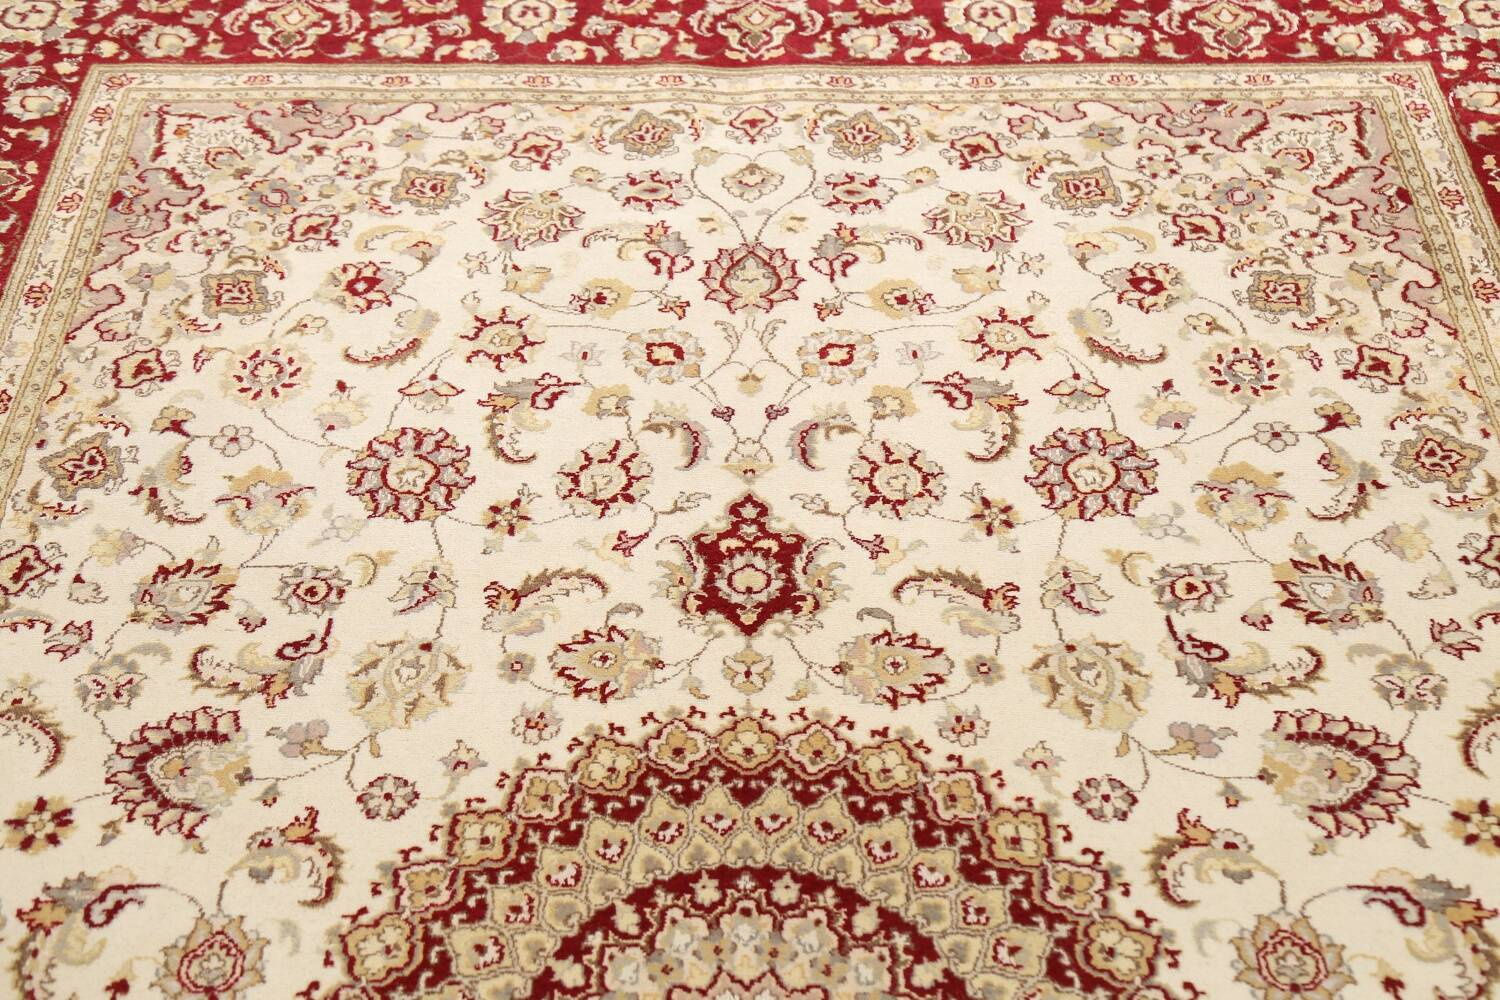 100% Vegetable Dye Floral Tabriz Oriental Area Rug 6x9 image 10